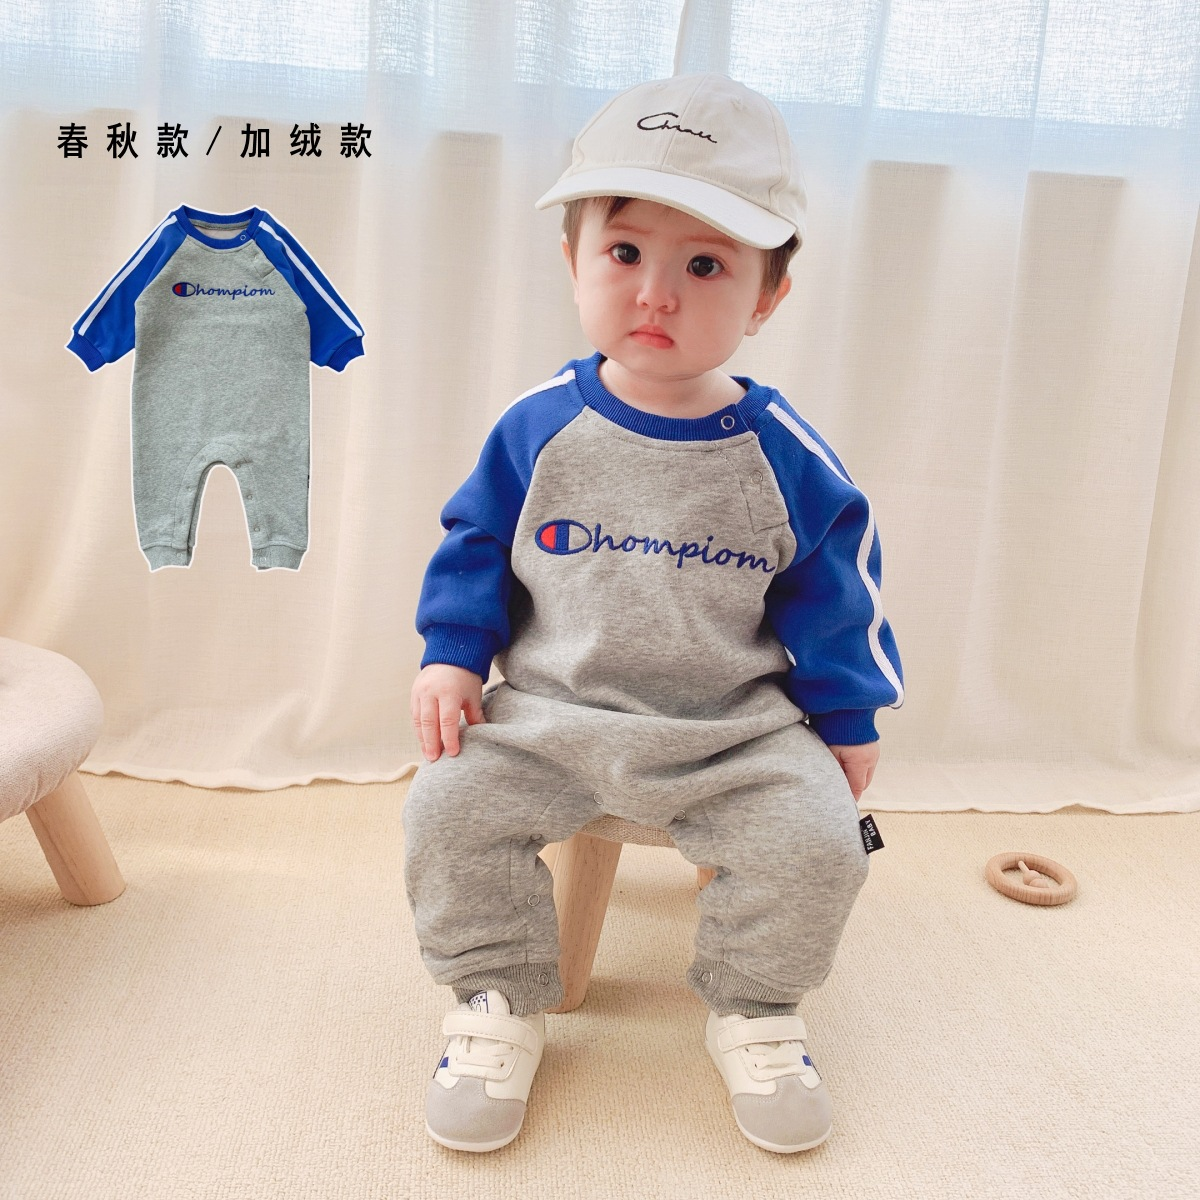 Baby plush one-piece clothes boys Khaki childrens climbing clothes embroidery spring outing clothes childrens one-piece clothes fashion